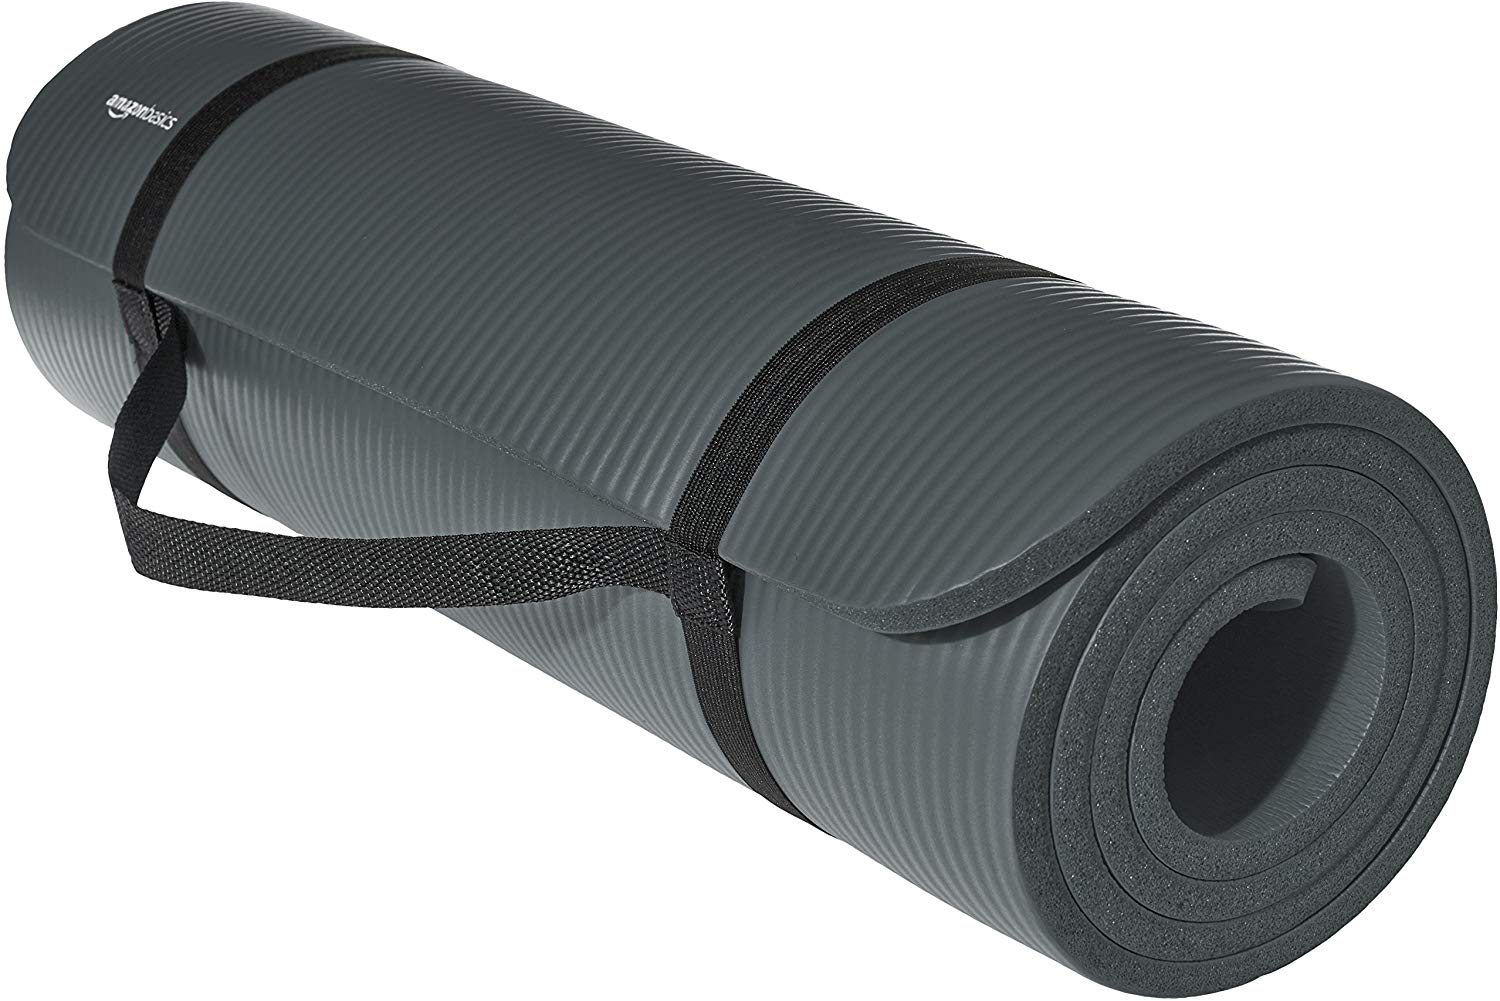 Amazonbasics 1 2 Inch Extra Thick Exercise Mat Compleo Physical Therapy Wellness